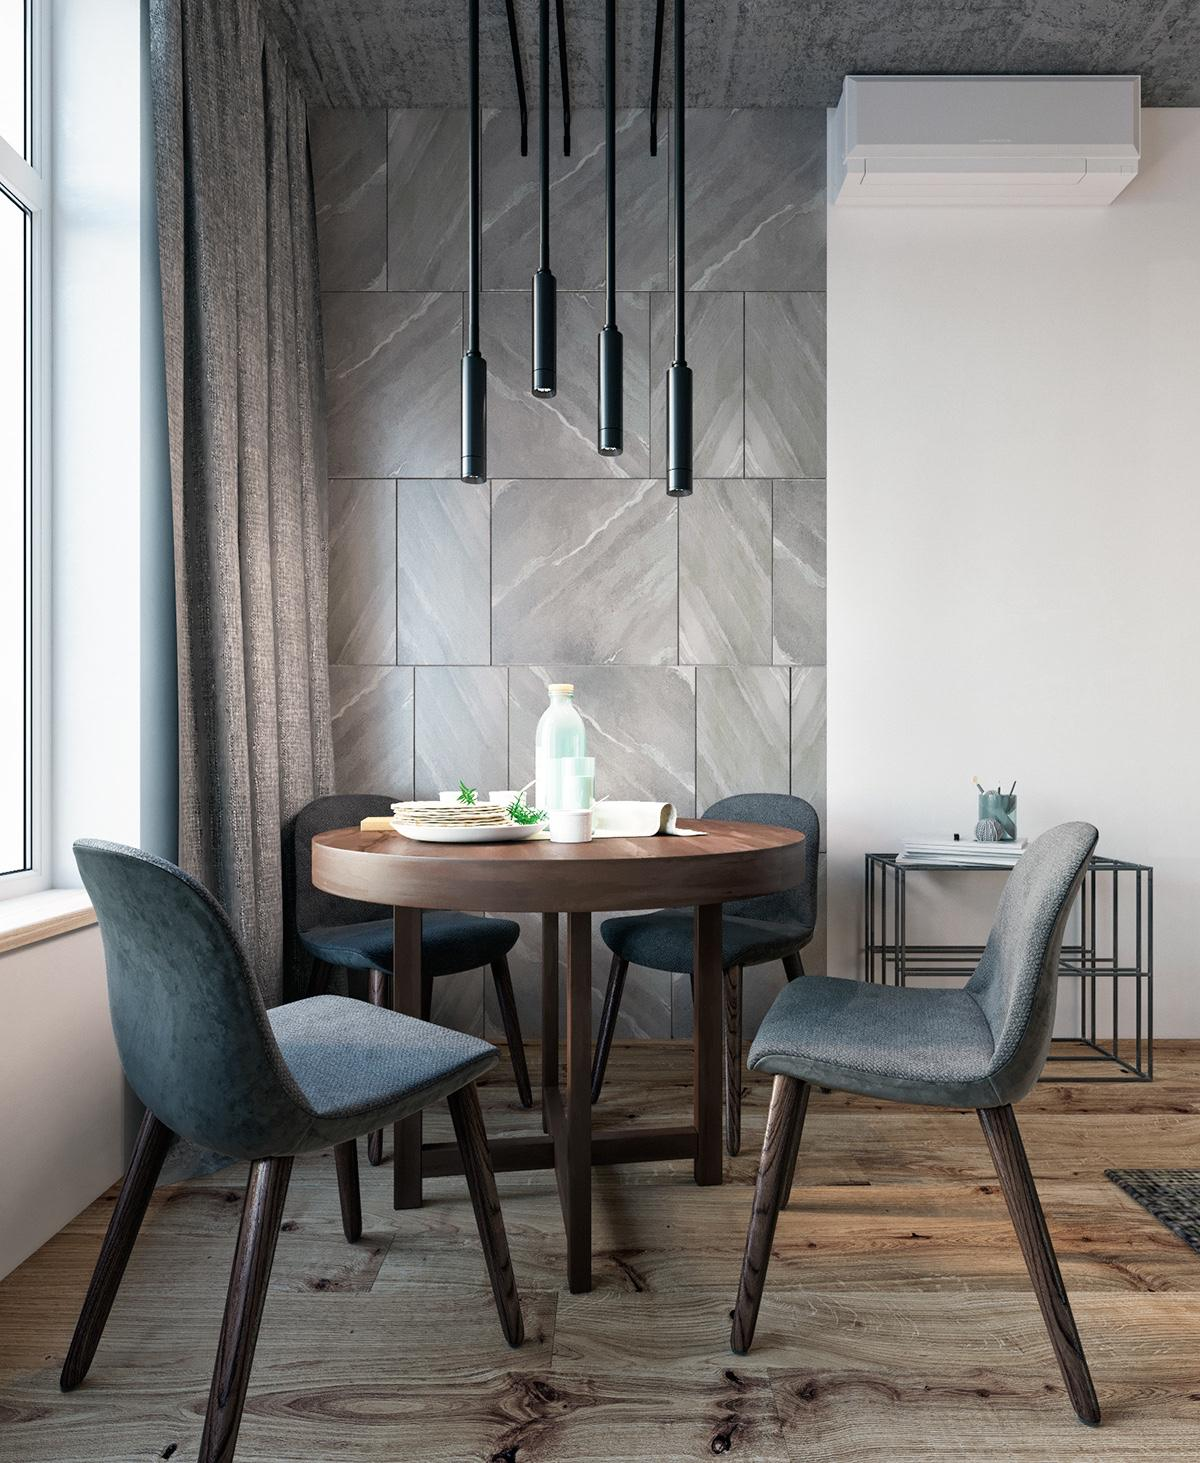 Bachelor Pad Dining Area Grey Tiled Feature Wall Low Hanging Lights Teal Velvet Chairs - Find greyspiration in 3 sophisticated modern grey spaces